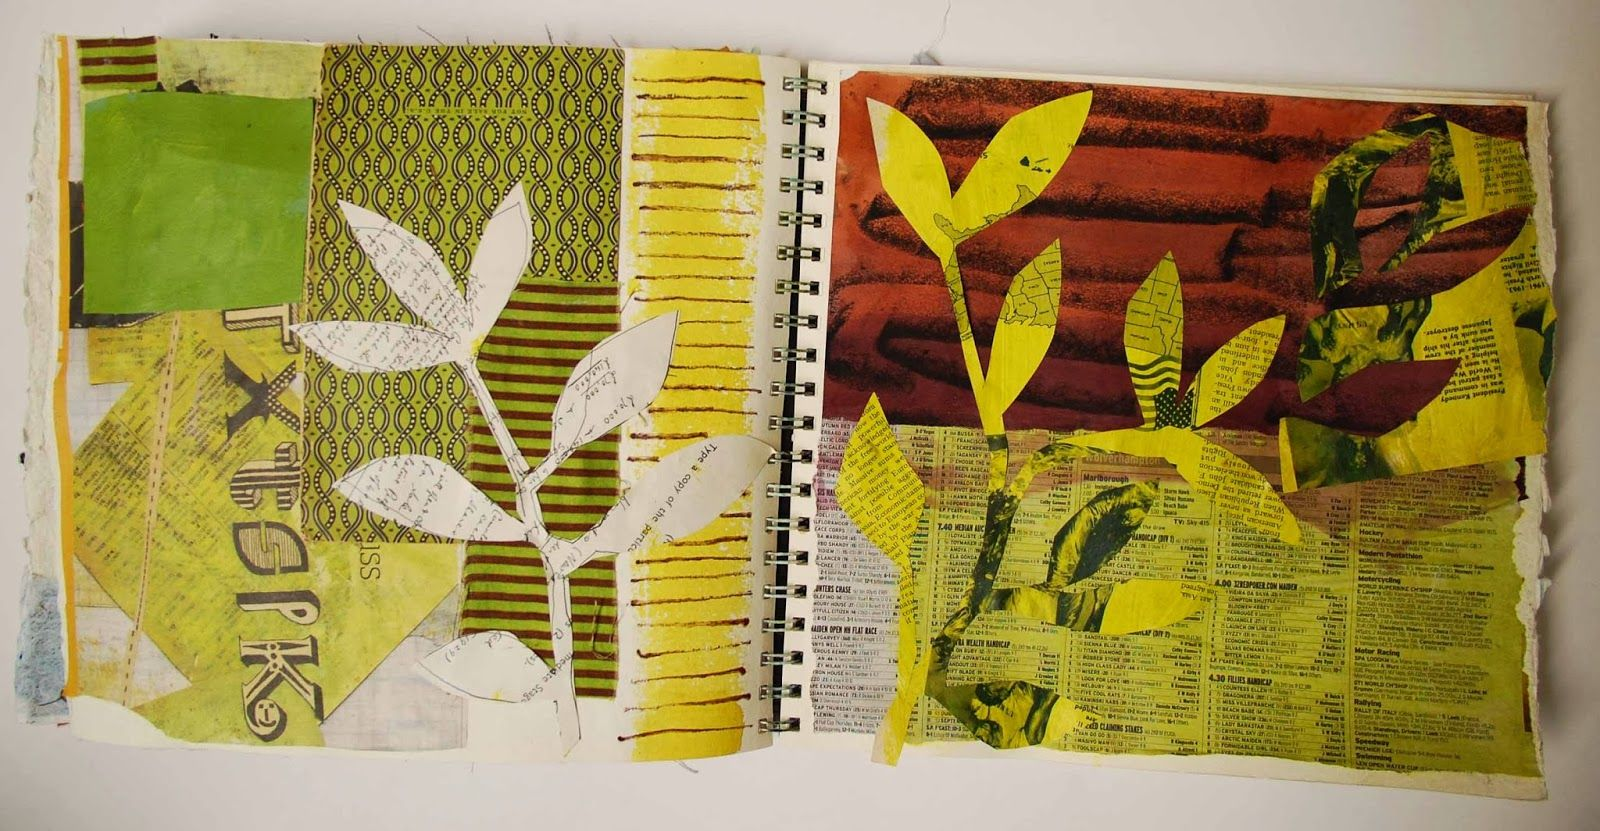 Mandy Pattullo/Thread and Thrift: More pages from my sketchbook